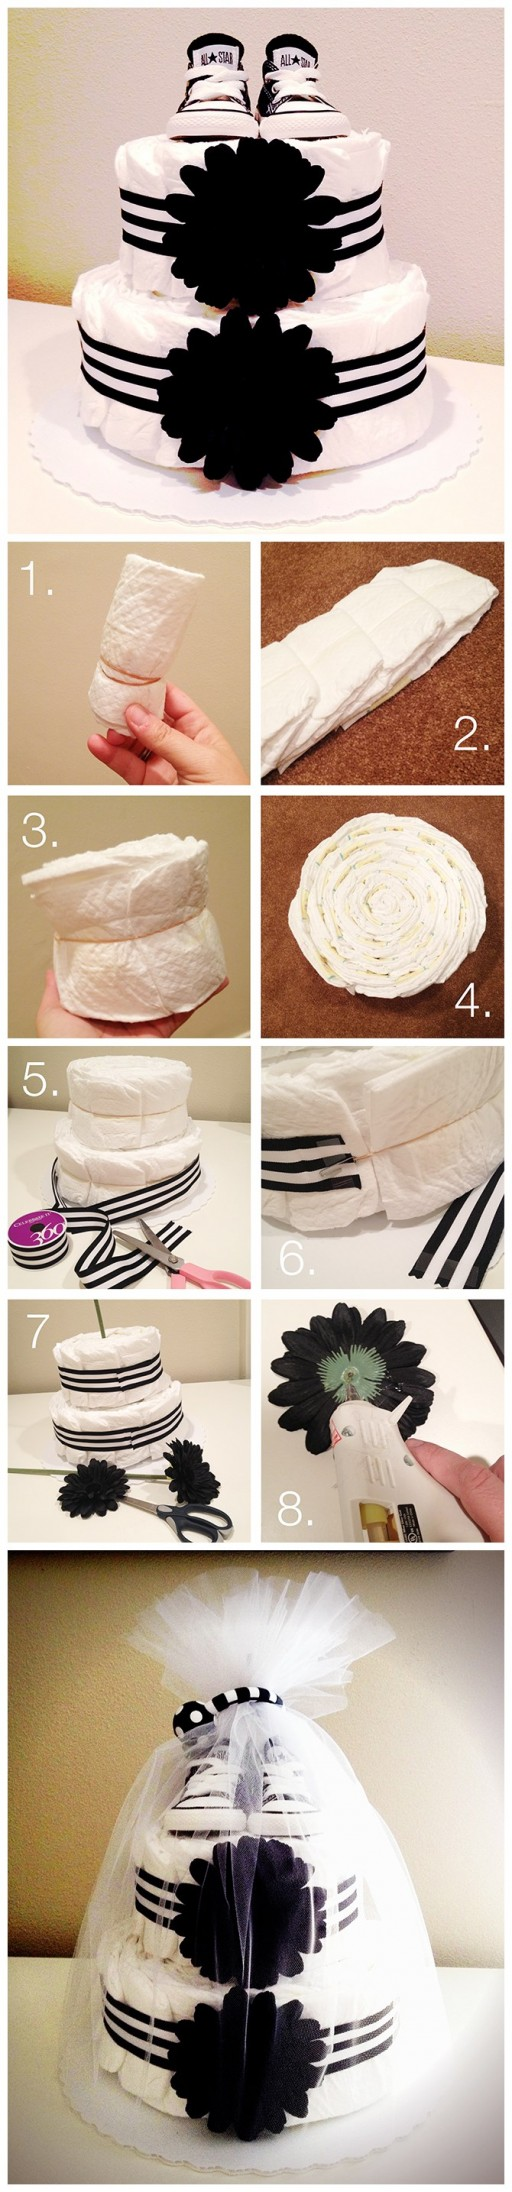 How to make DIY diaper cake step by step DIY tutorial instructions